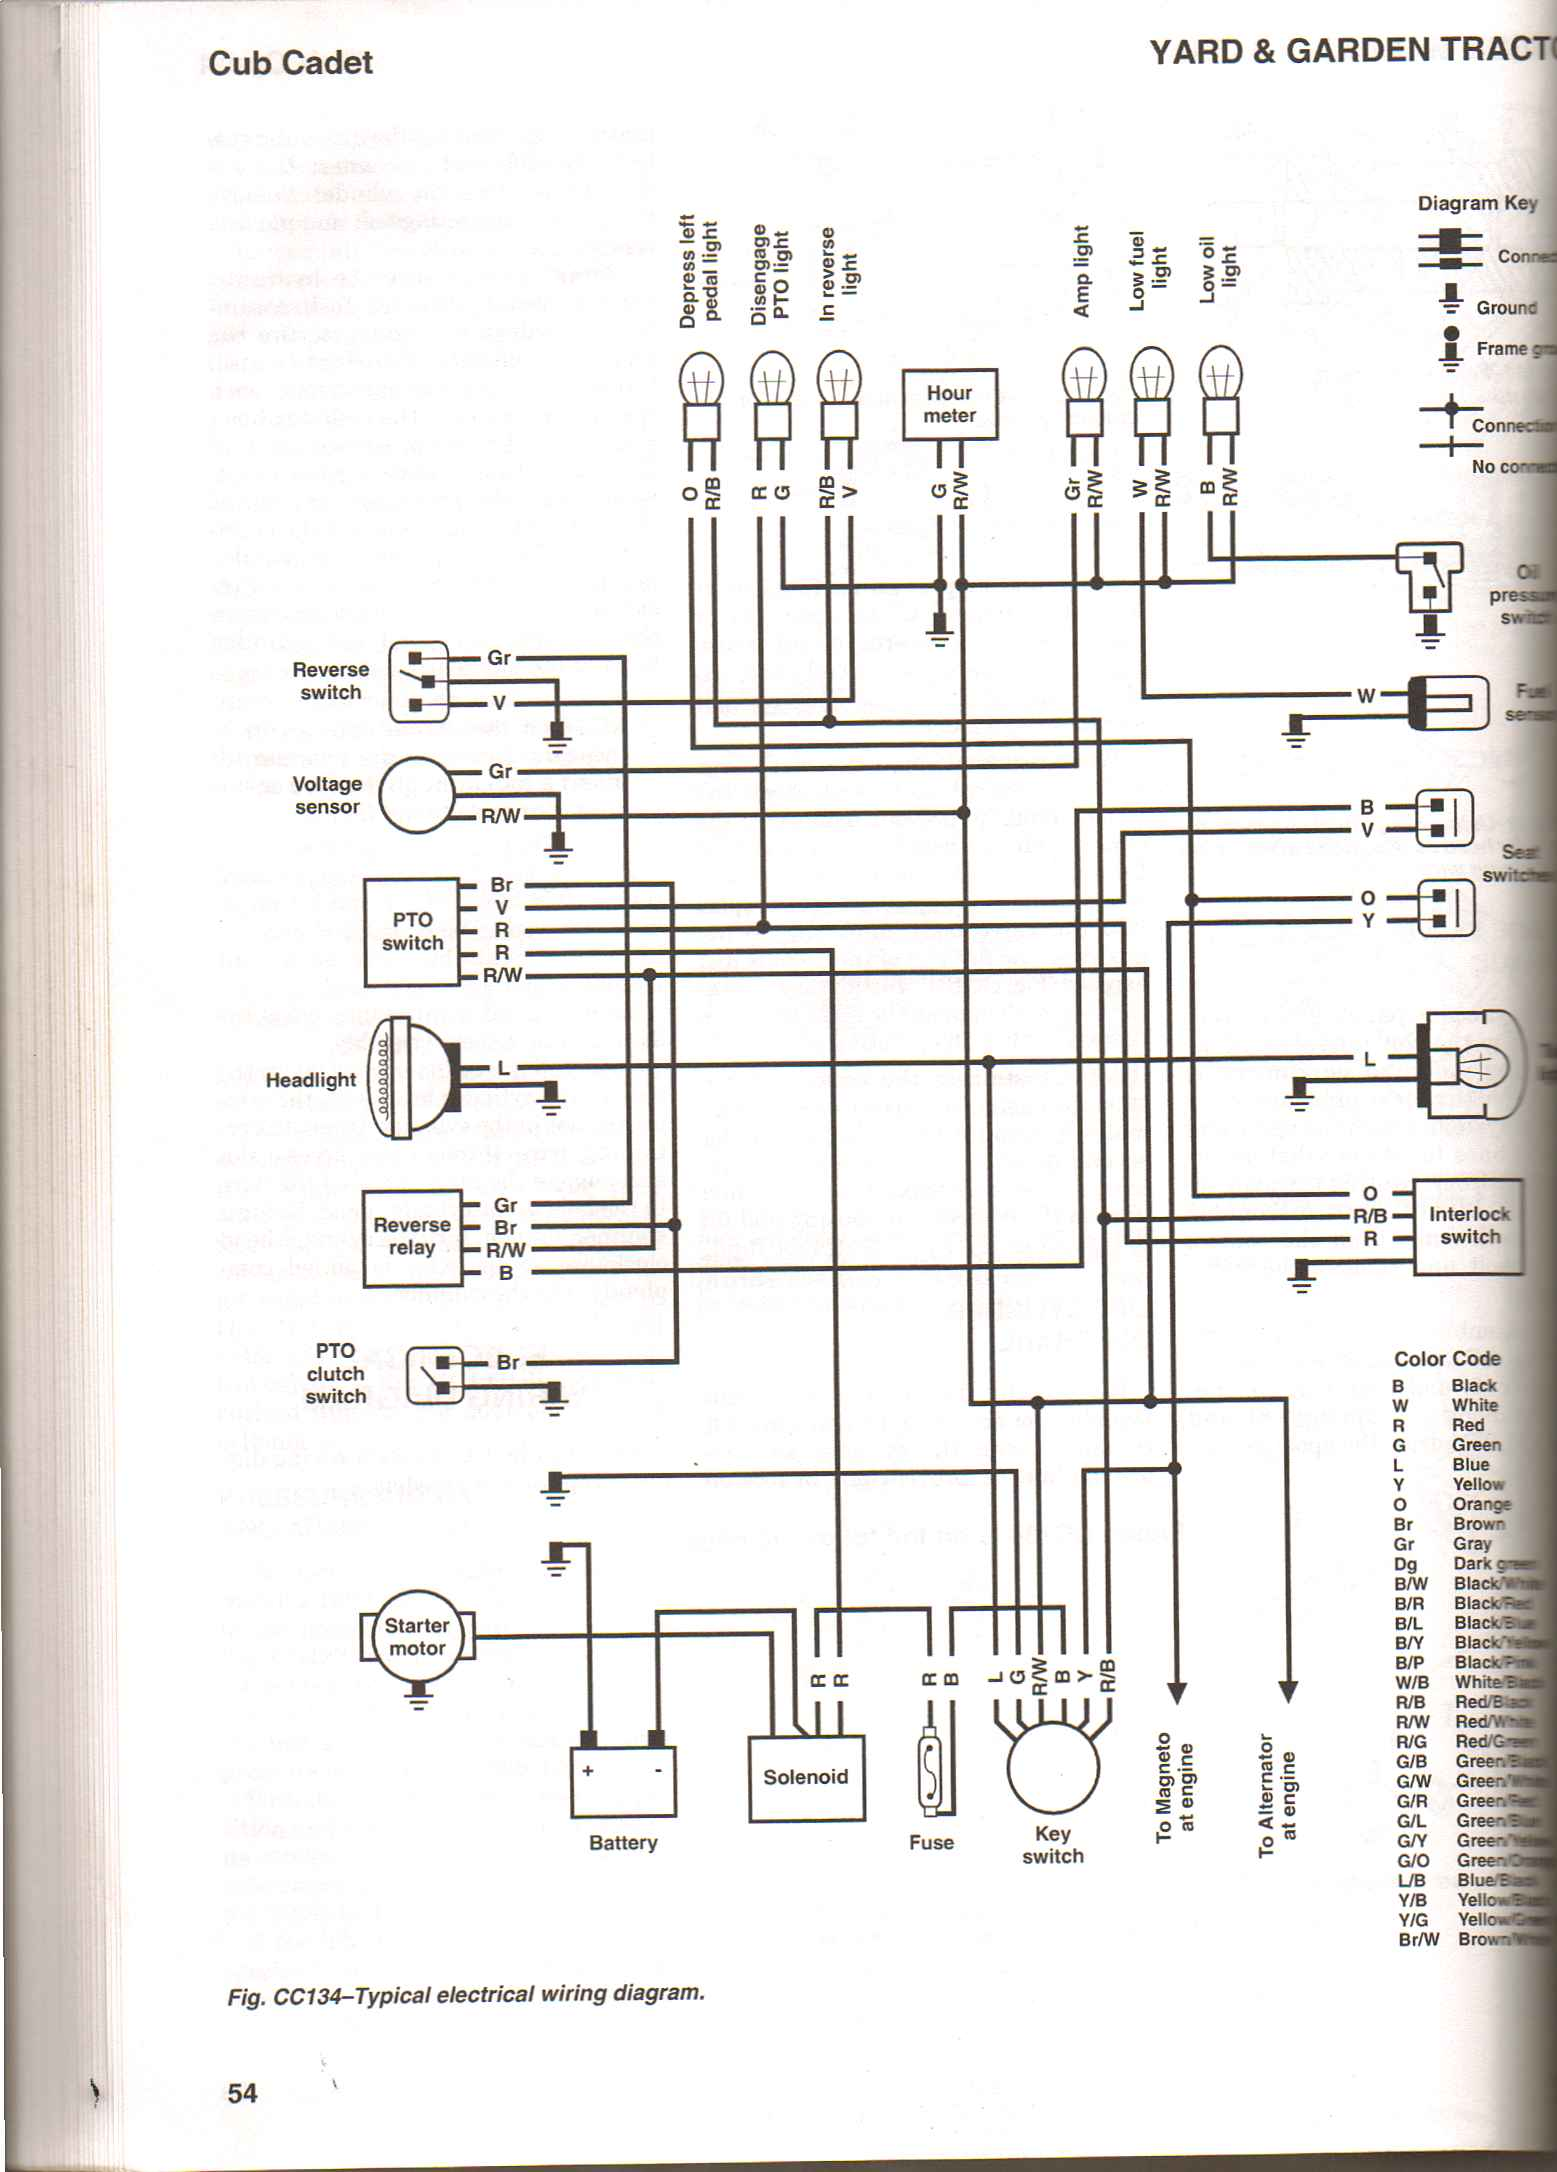 DIAGRAM] Diagram Cub Cadet Wiring Diagrams FULL Version HD Quality Wiring  Diagrams - ENGERYSUSPENSION.RAPFRANCE.FRengerysuspension.rapfrance.fr